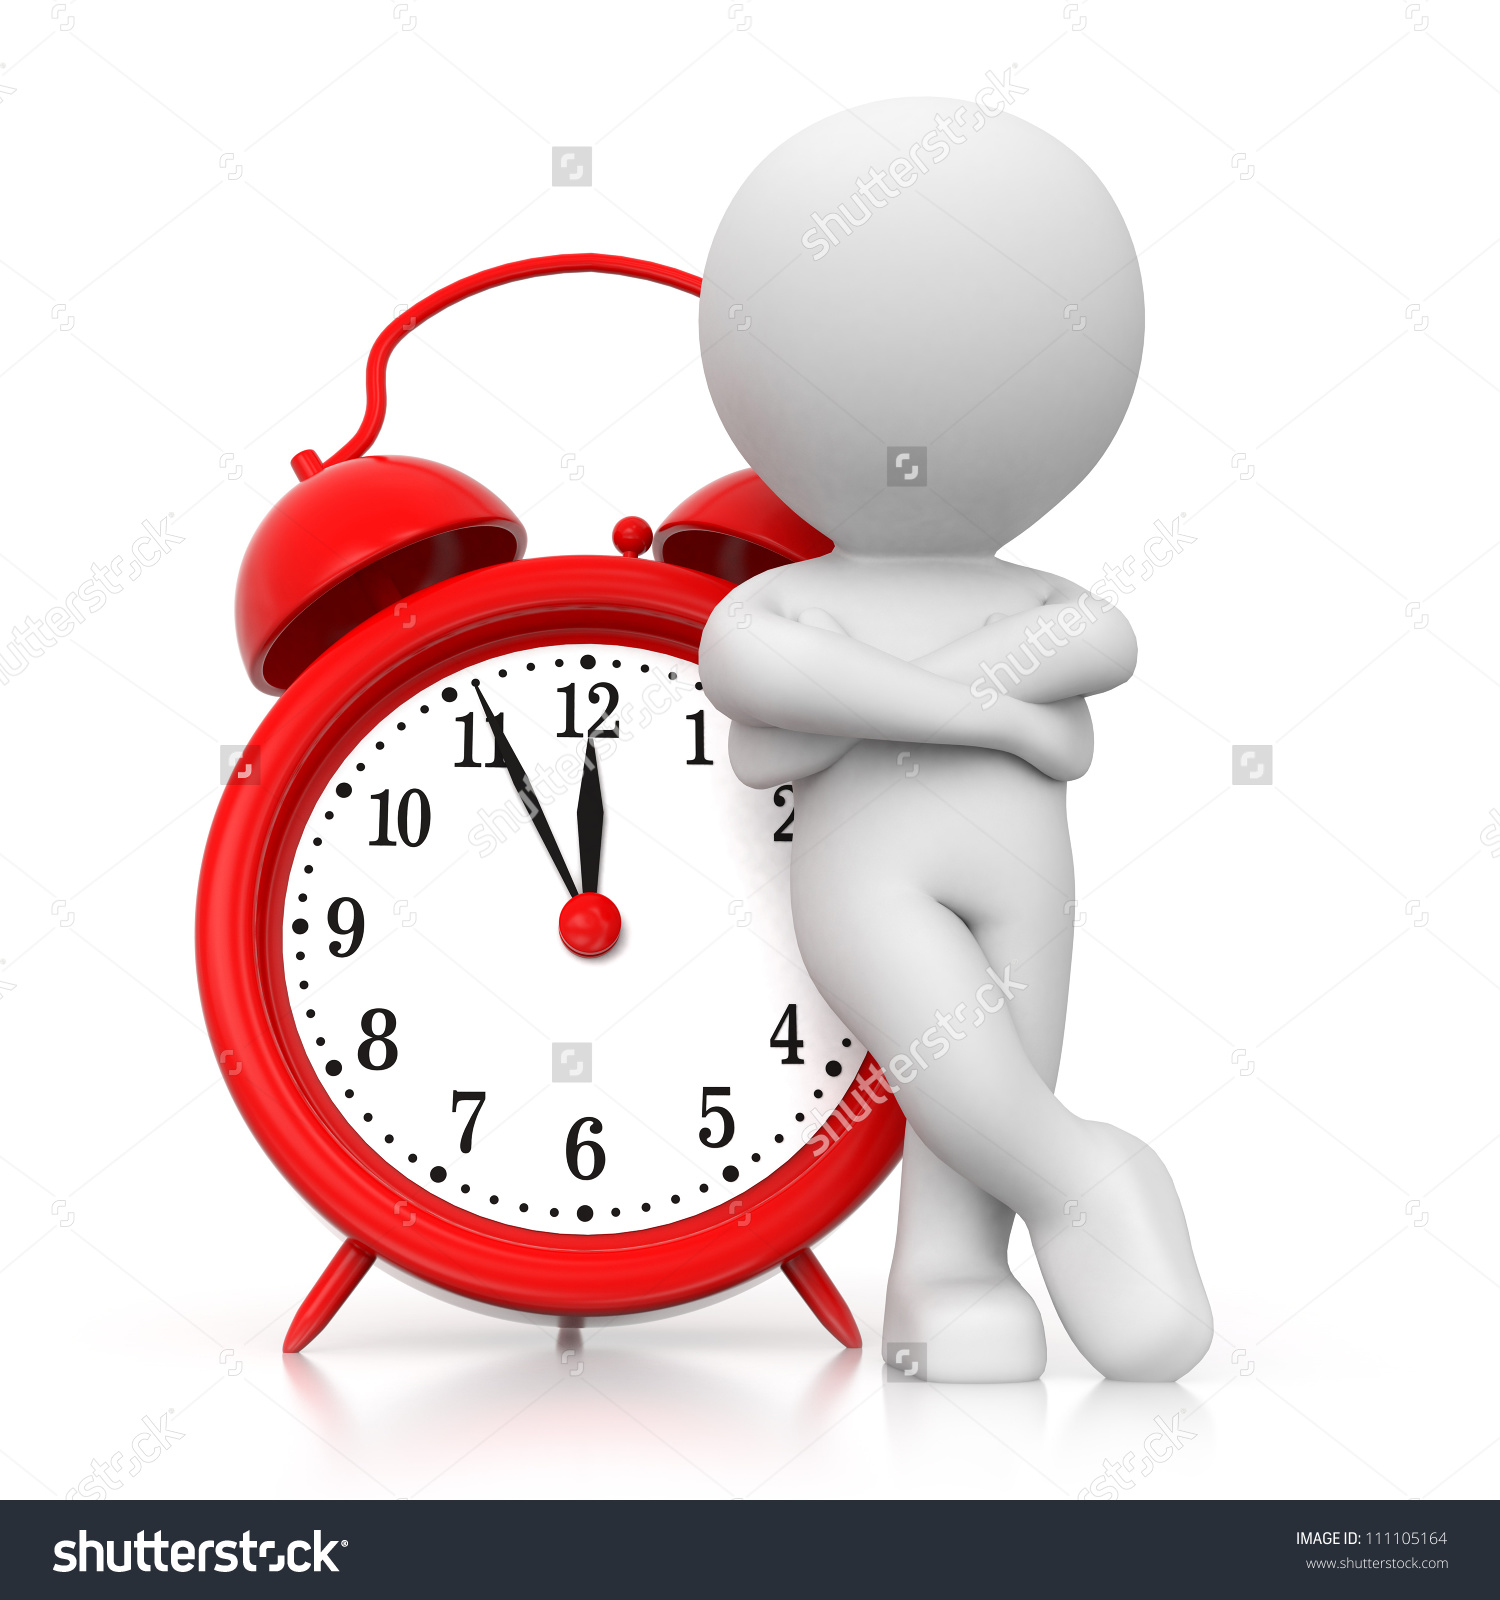 Waiting with clock clipart clipart black and white library Waiting with clock clipart - ClipartFest clipart black and white library